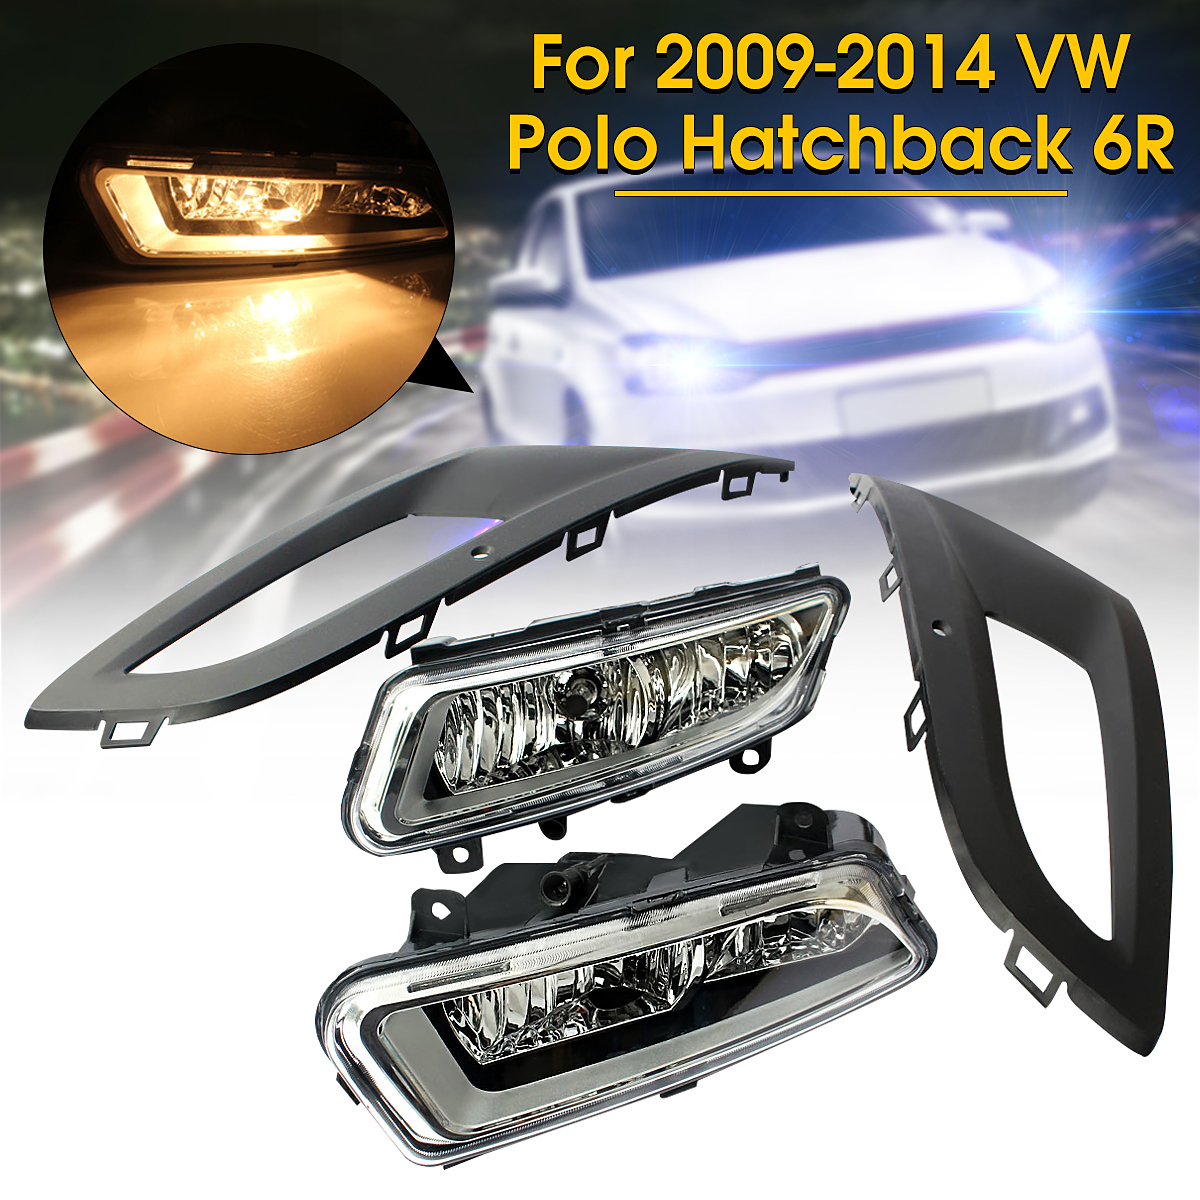 2Pcs Car Front Left Right Fog Light H11 Lights Bulbs Foglamps Bumper Grill Lower Grille Cover for VW Polo Hatchback 6R 2009-2014 12v car light front bumper grilles lamp fog light for volkswagen vw polo hatchback 6r 2009 2014 car styling